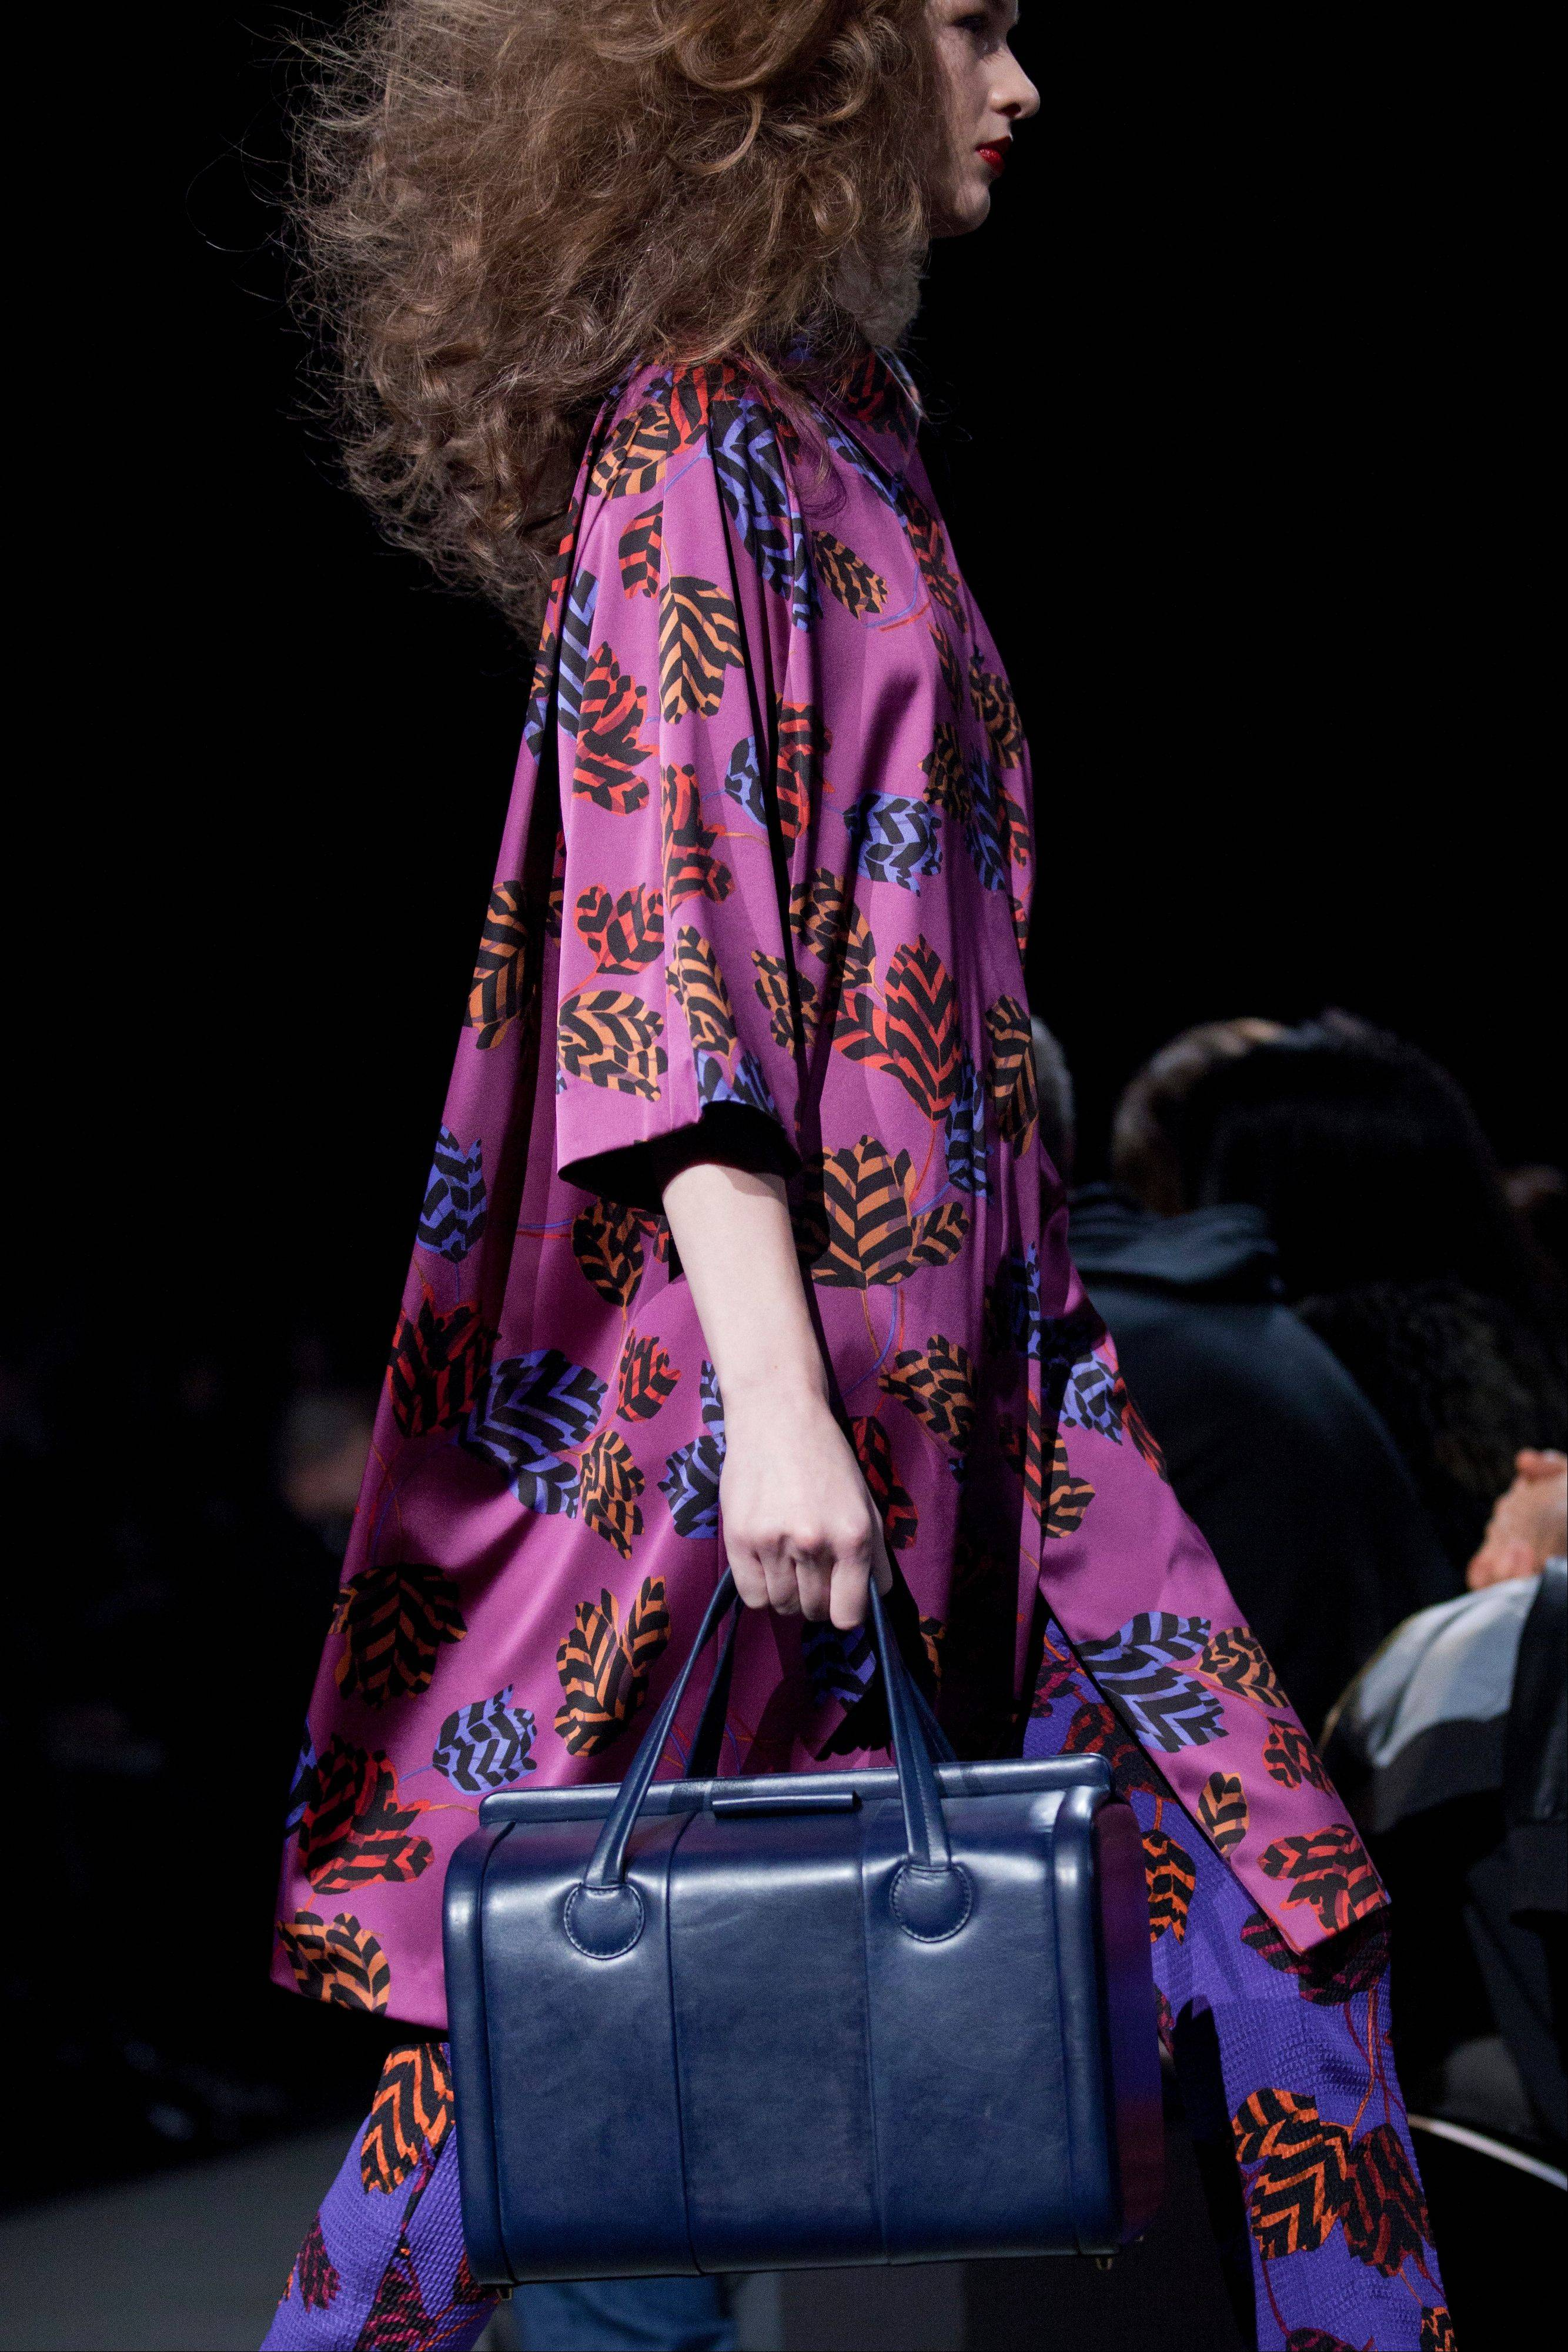 A model walks the runway during the Marc by Marc Jacobs Fall 2013 fashion show during Fashion Week in New York. Orchid is growing on us: A version of the purple hue is Pantone Inc.'s color of the year for 2014.